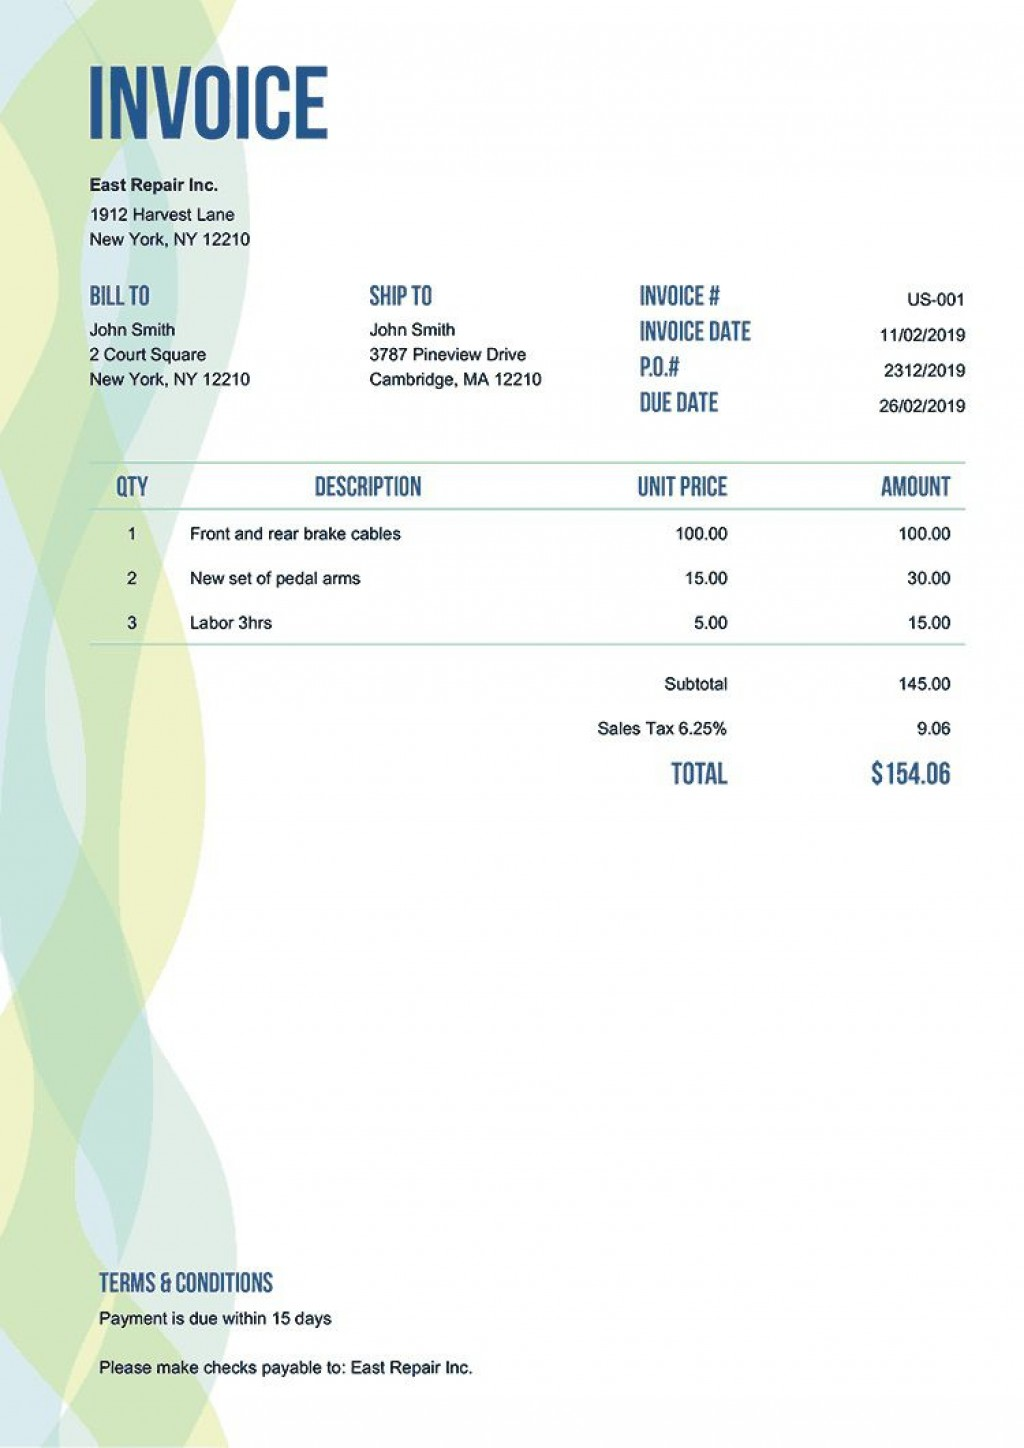 005 Stunning Invoice Template Free Printable High Definition  Blank Word Document DocLarge